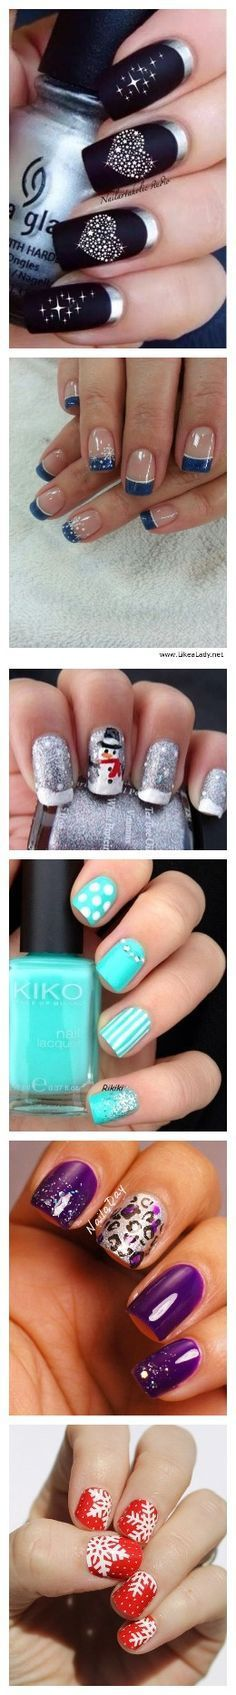 Introducing The Glamorous World Of Nail Art Luxury Beauty - winter nails - Cute Nail Art, Nail Art Diy, Easy Nail Art, Diy Nails, Cute Nails, Pretty Nails, Nail Art Designs 2016, Cute Nail Designs, Simple Designs